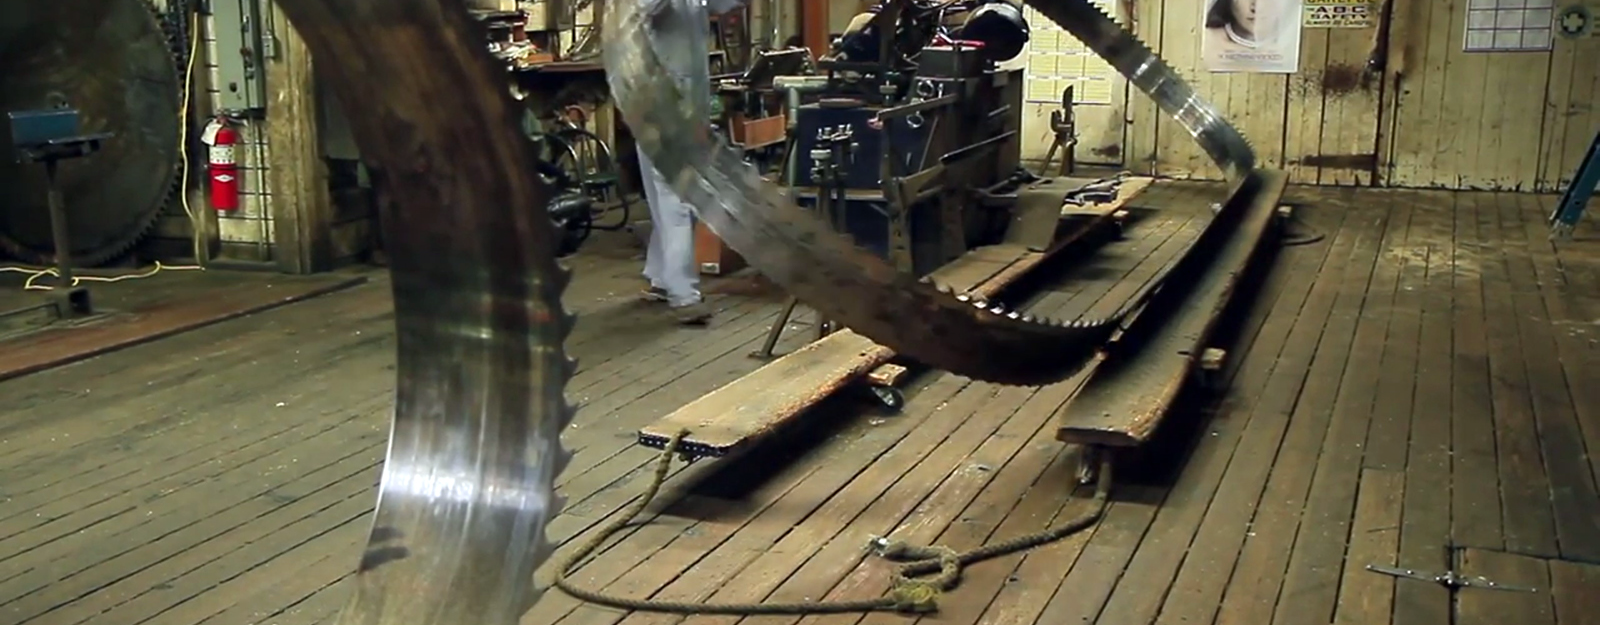 Here's How to Sharpen a Gigantic 50-Foot Bandsaw Blade - Core77